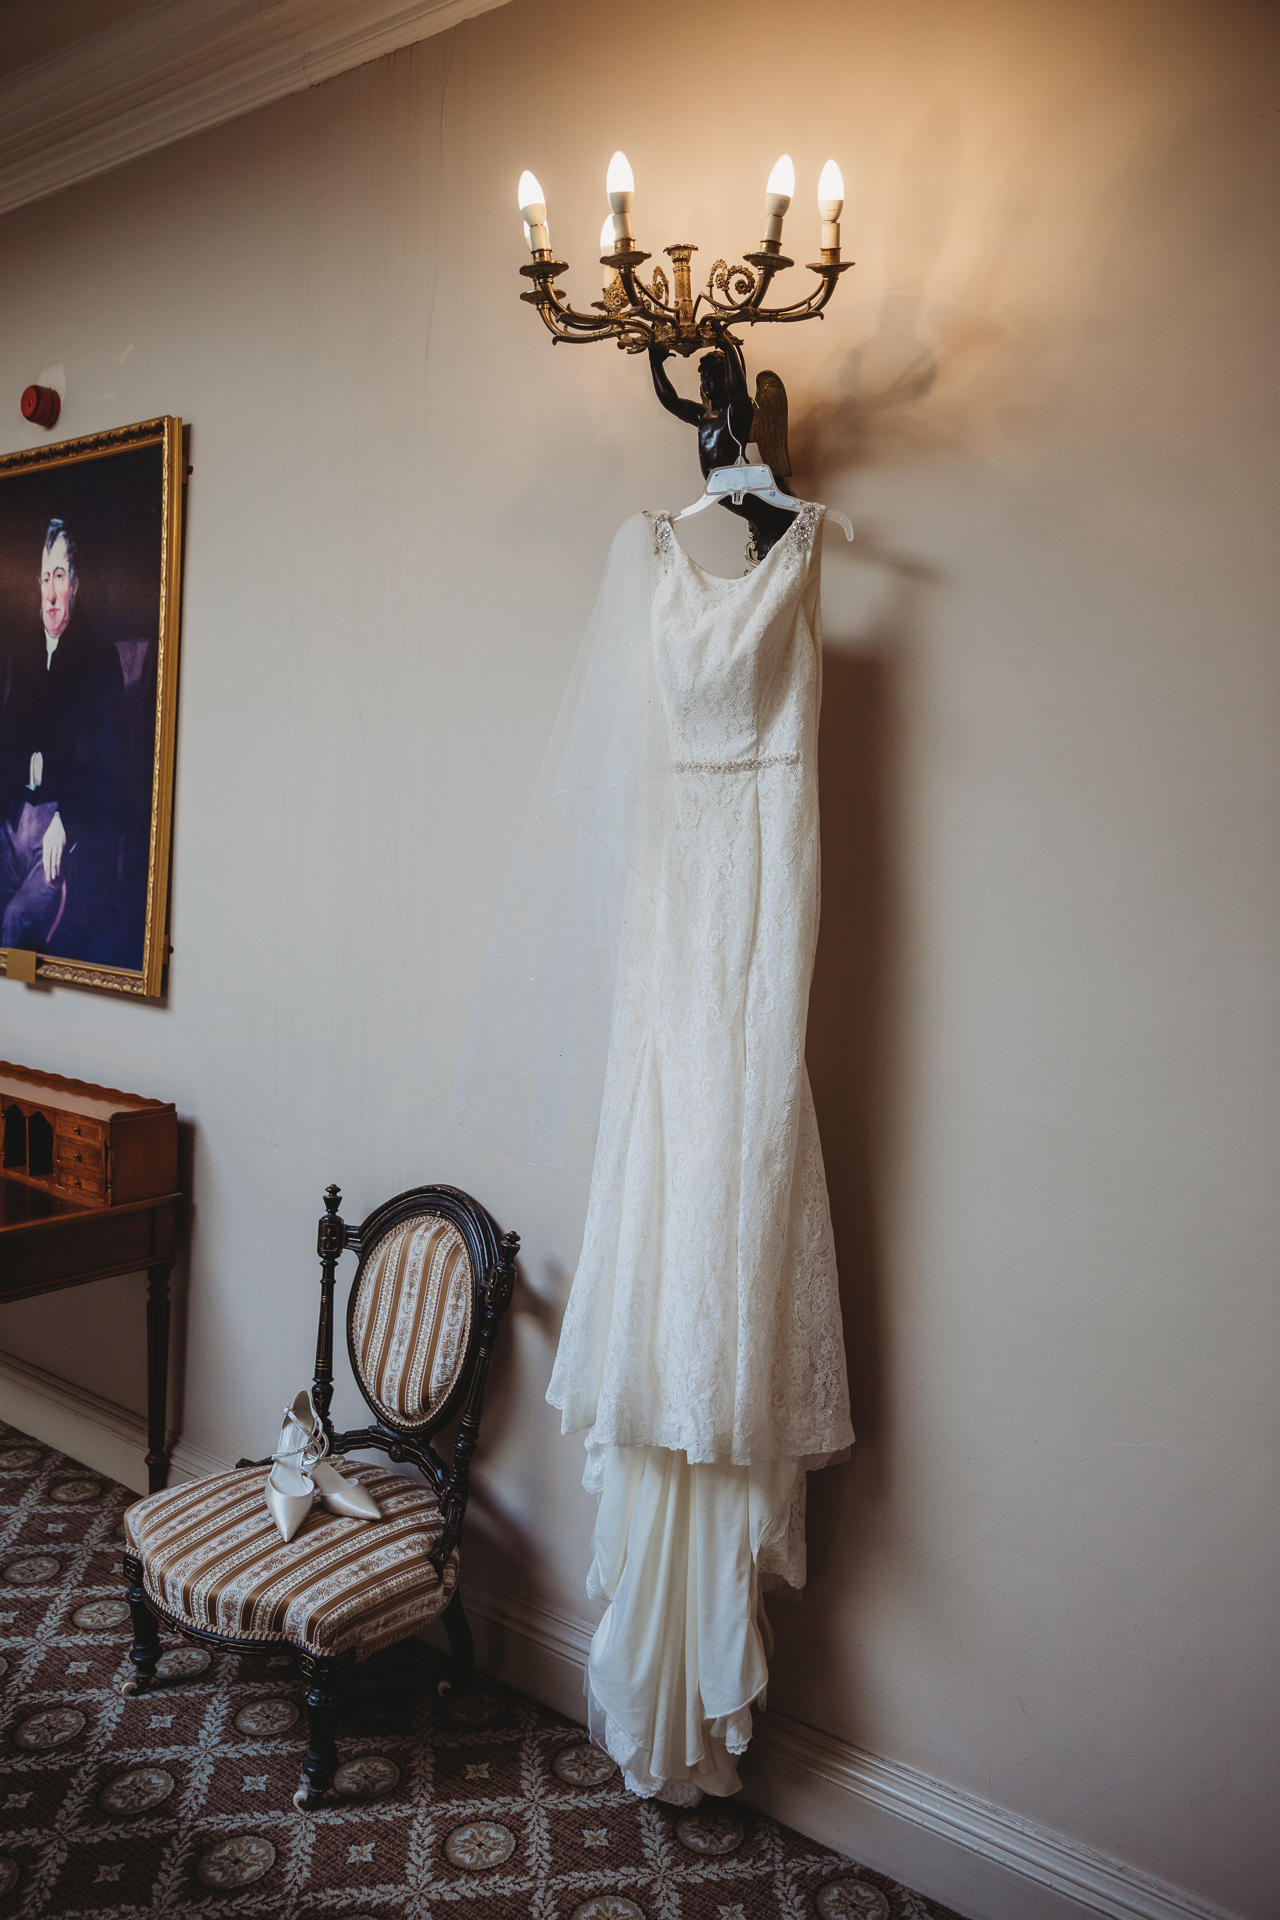 wedding dress hanging in the hall